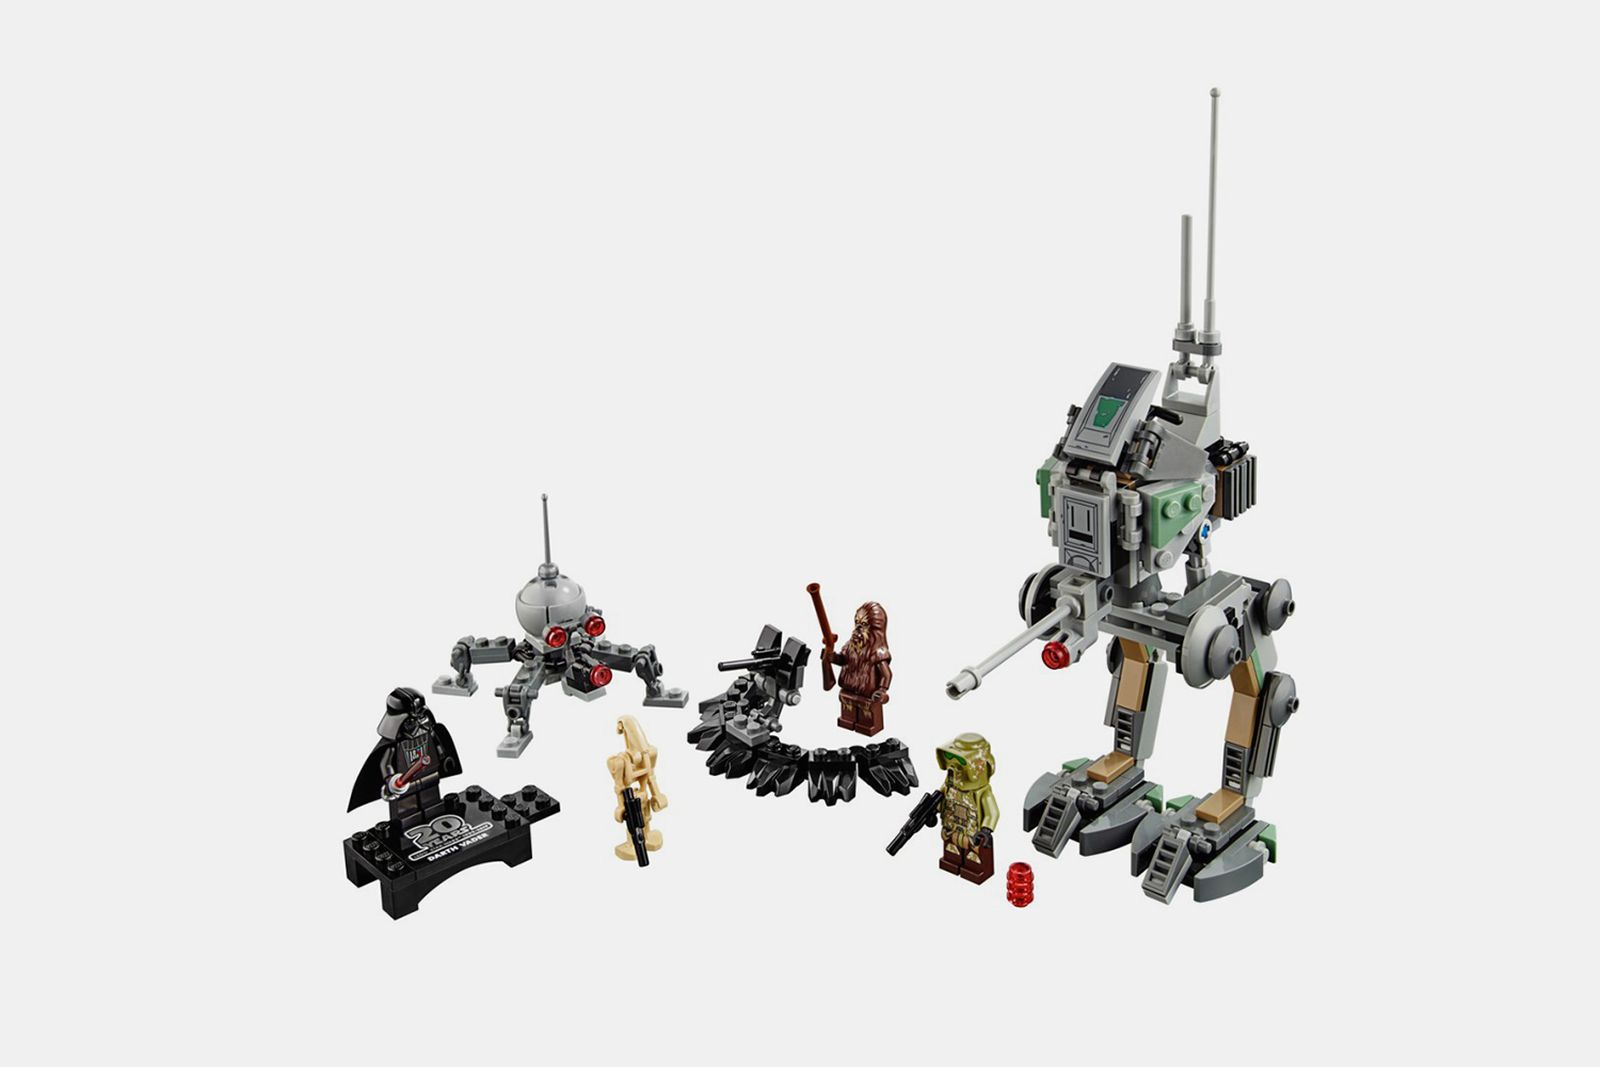 lego star wars 20th anniversary vehicle sets